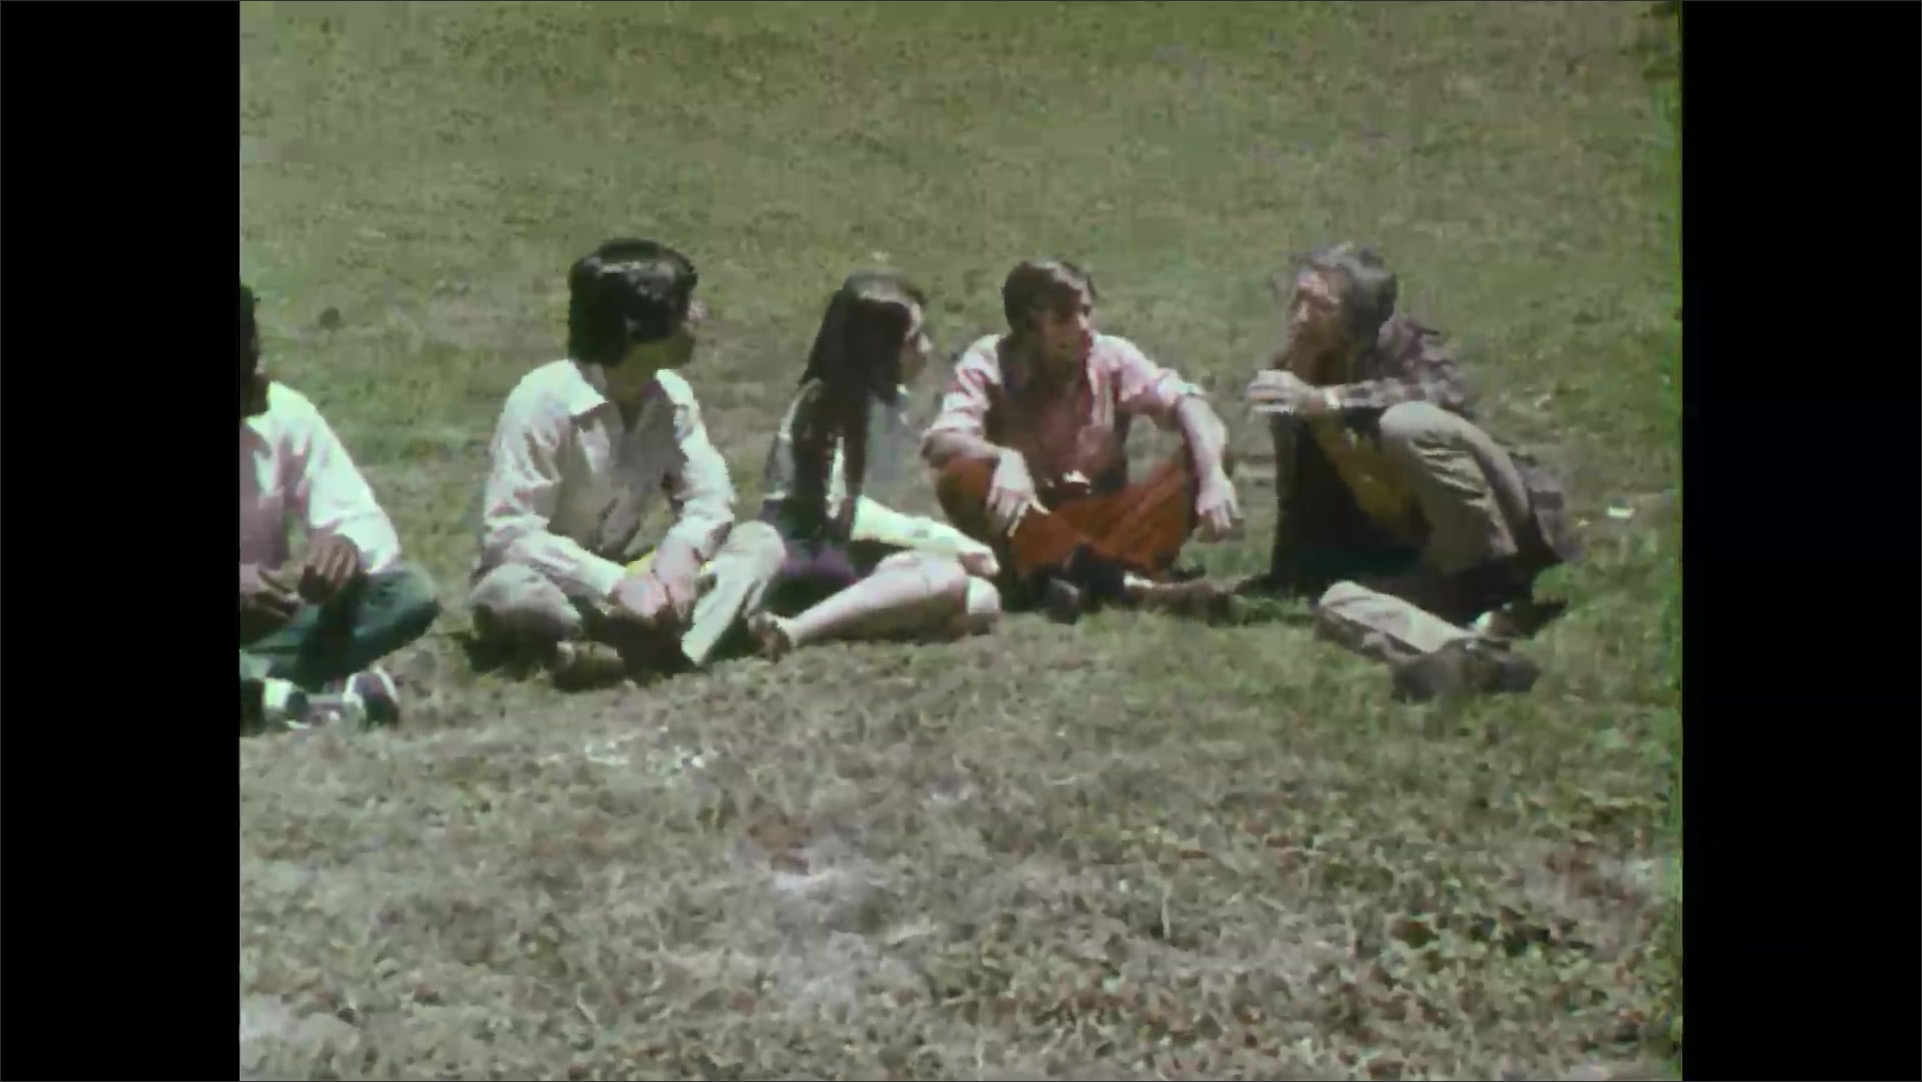 Group of 1970s students sits on grass listening to teacher.